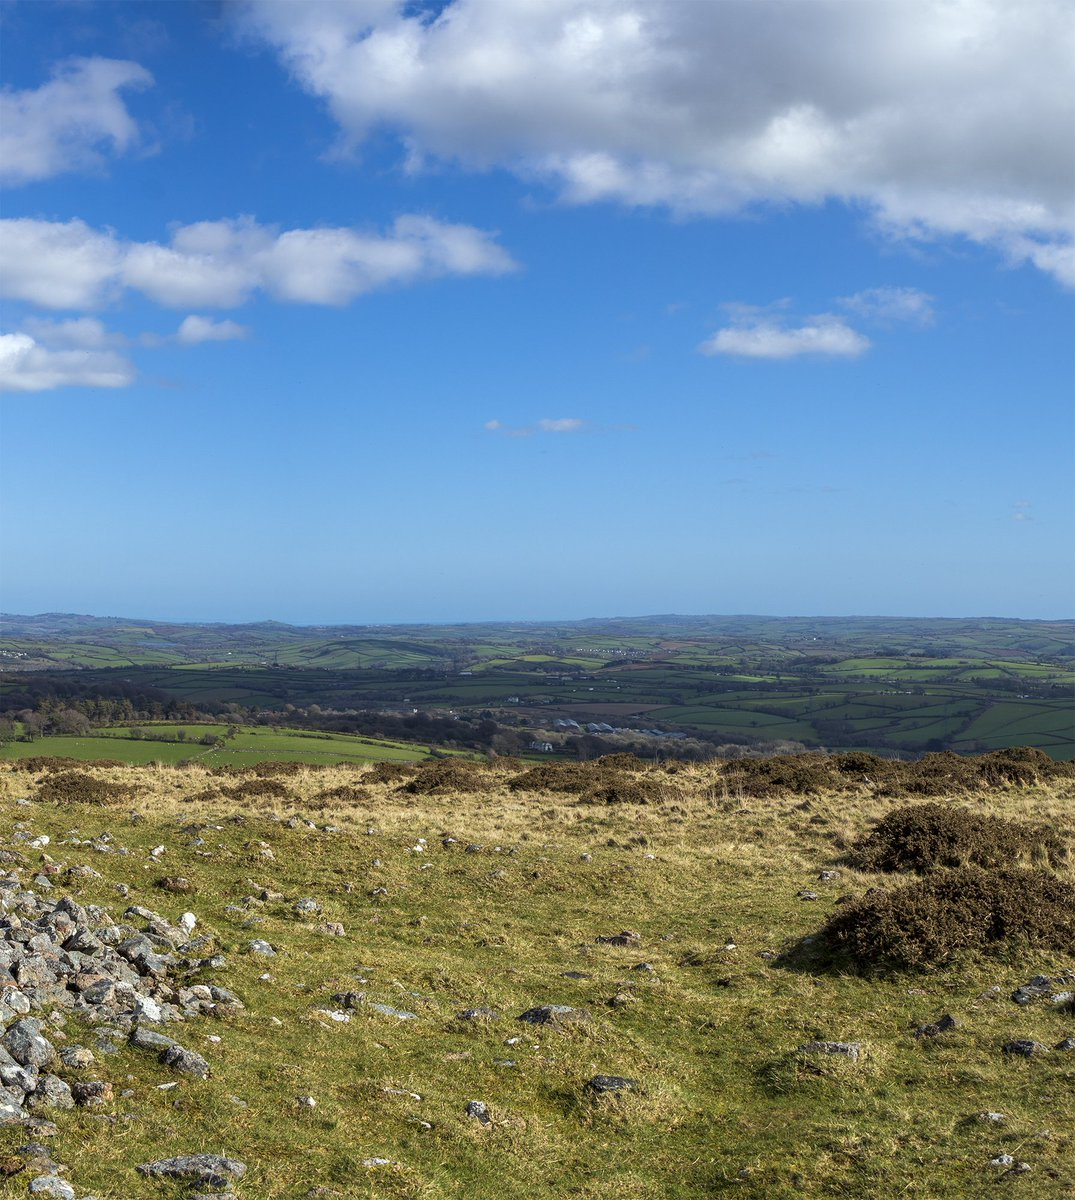 test Twitter Media - Panoramic view of Dartmoor and South Devon from the top of Western Beacon. At just over 1,000 feet high, you can see for miles on a clear day.  #Ivybridge #Plymouth #Devon #England #Dartmoor #Photography #Panorama #LandscapePhotography #OSMaps https://t.co/91gZczfYum